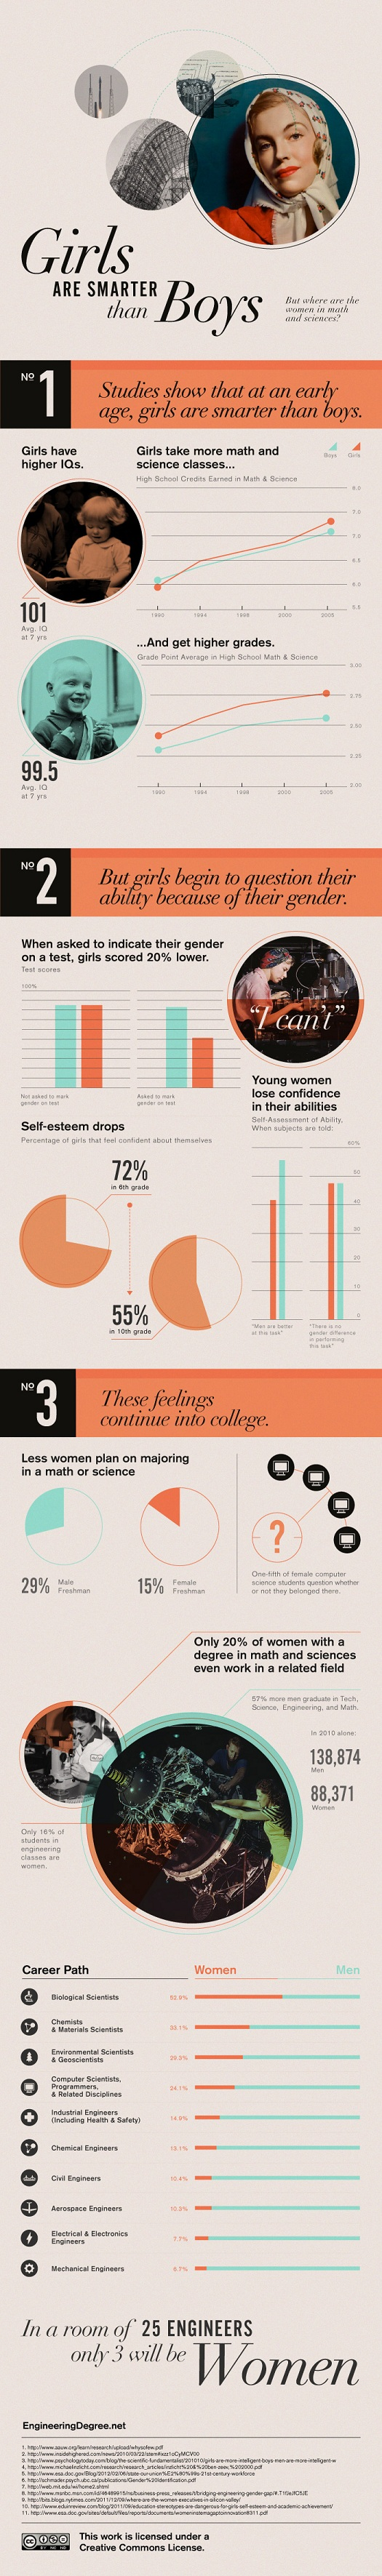 Girls in STEM infographic